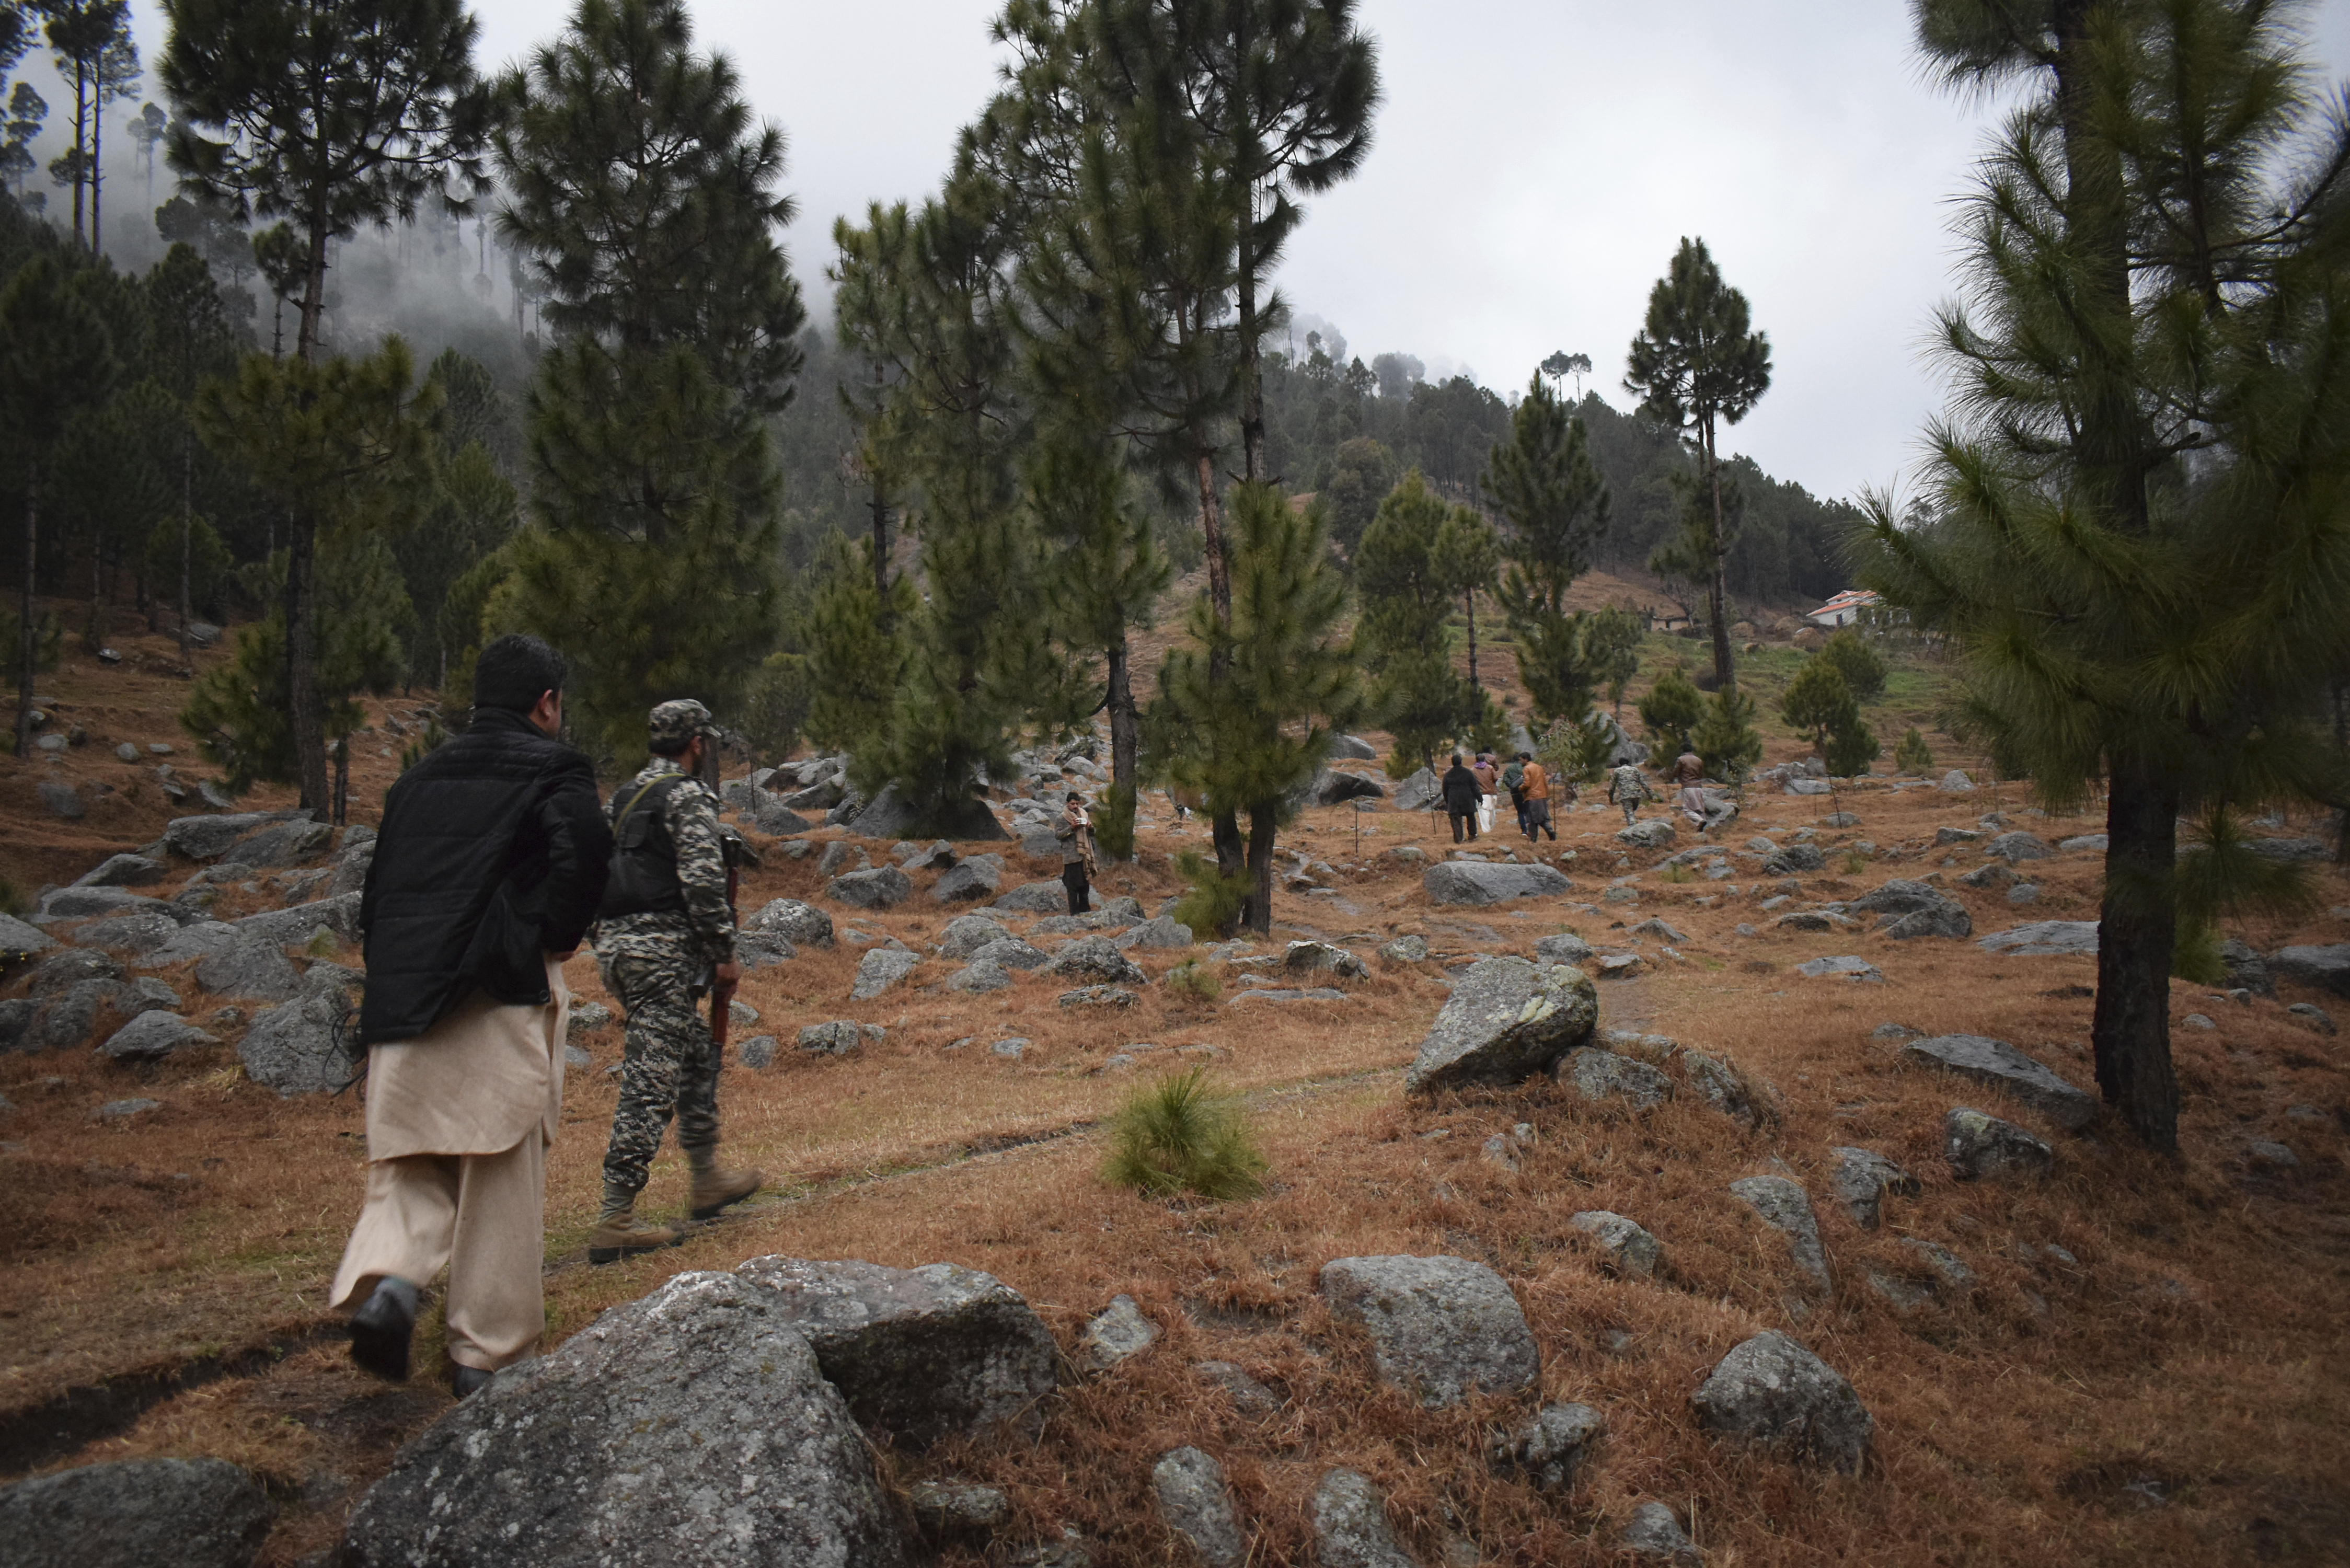 Pakistani reporters and troops visit the site of the Indian airstrike in Jaba, near Balakot, on Tuesday. The $1.3-billion 118km-long Thakot-Havelian road project that's under construction passes through Mansehra district, where the Indian air attacks took place.